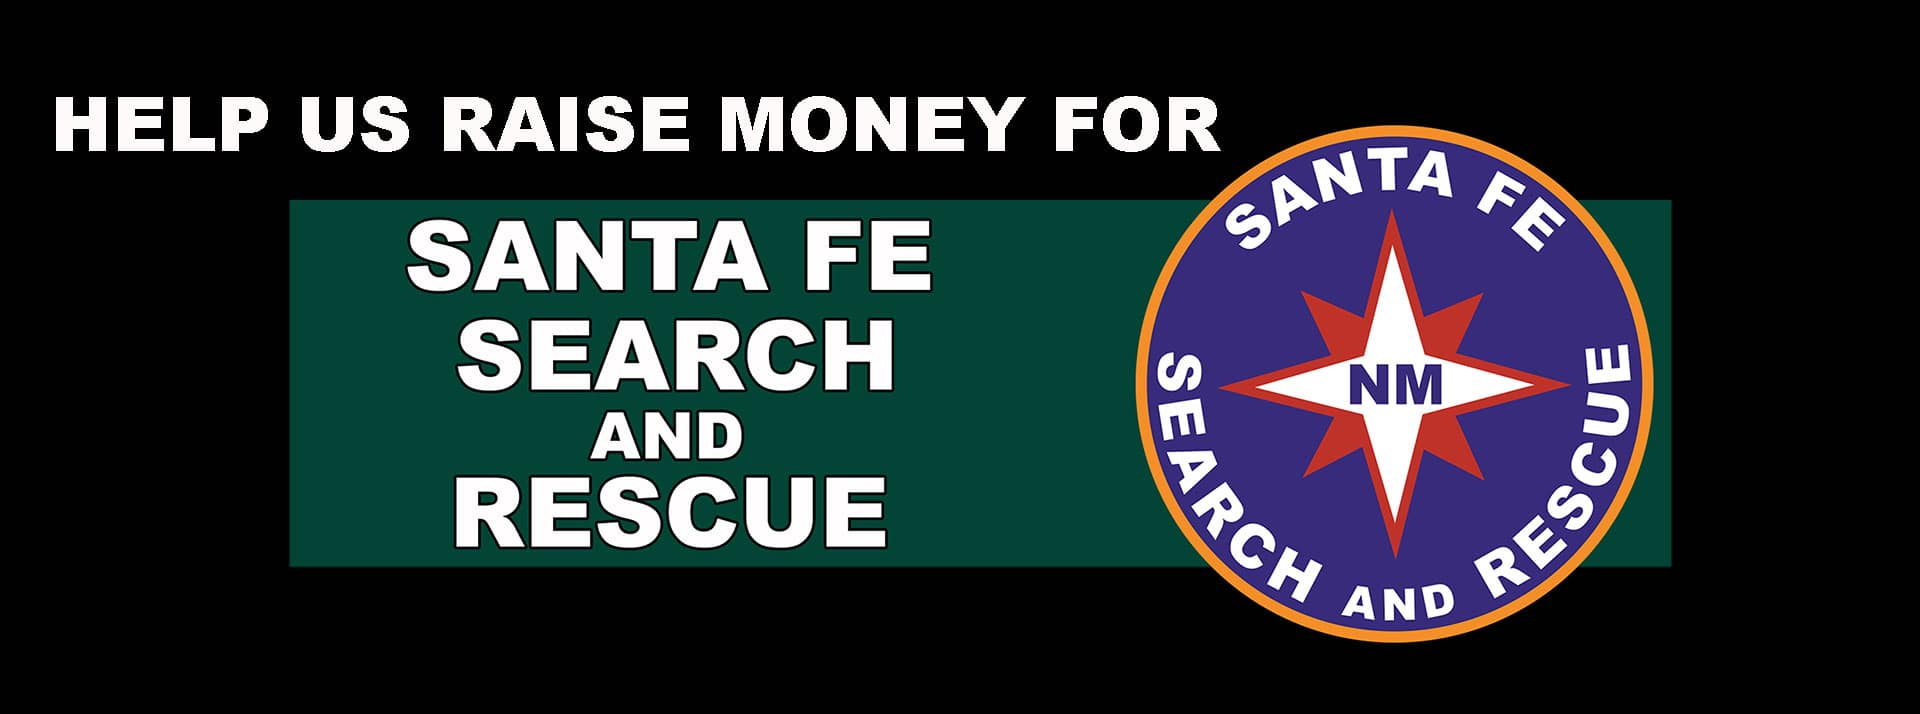 help raise money for Santa Fe Search and Rescue